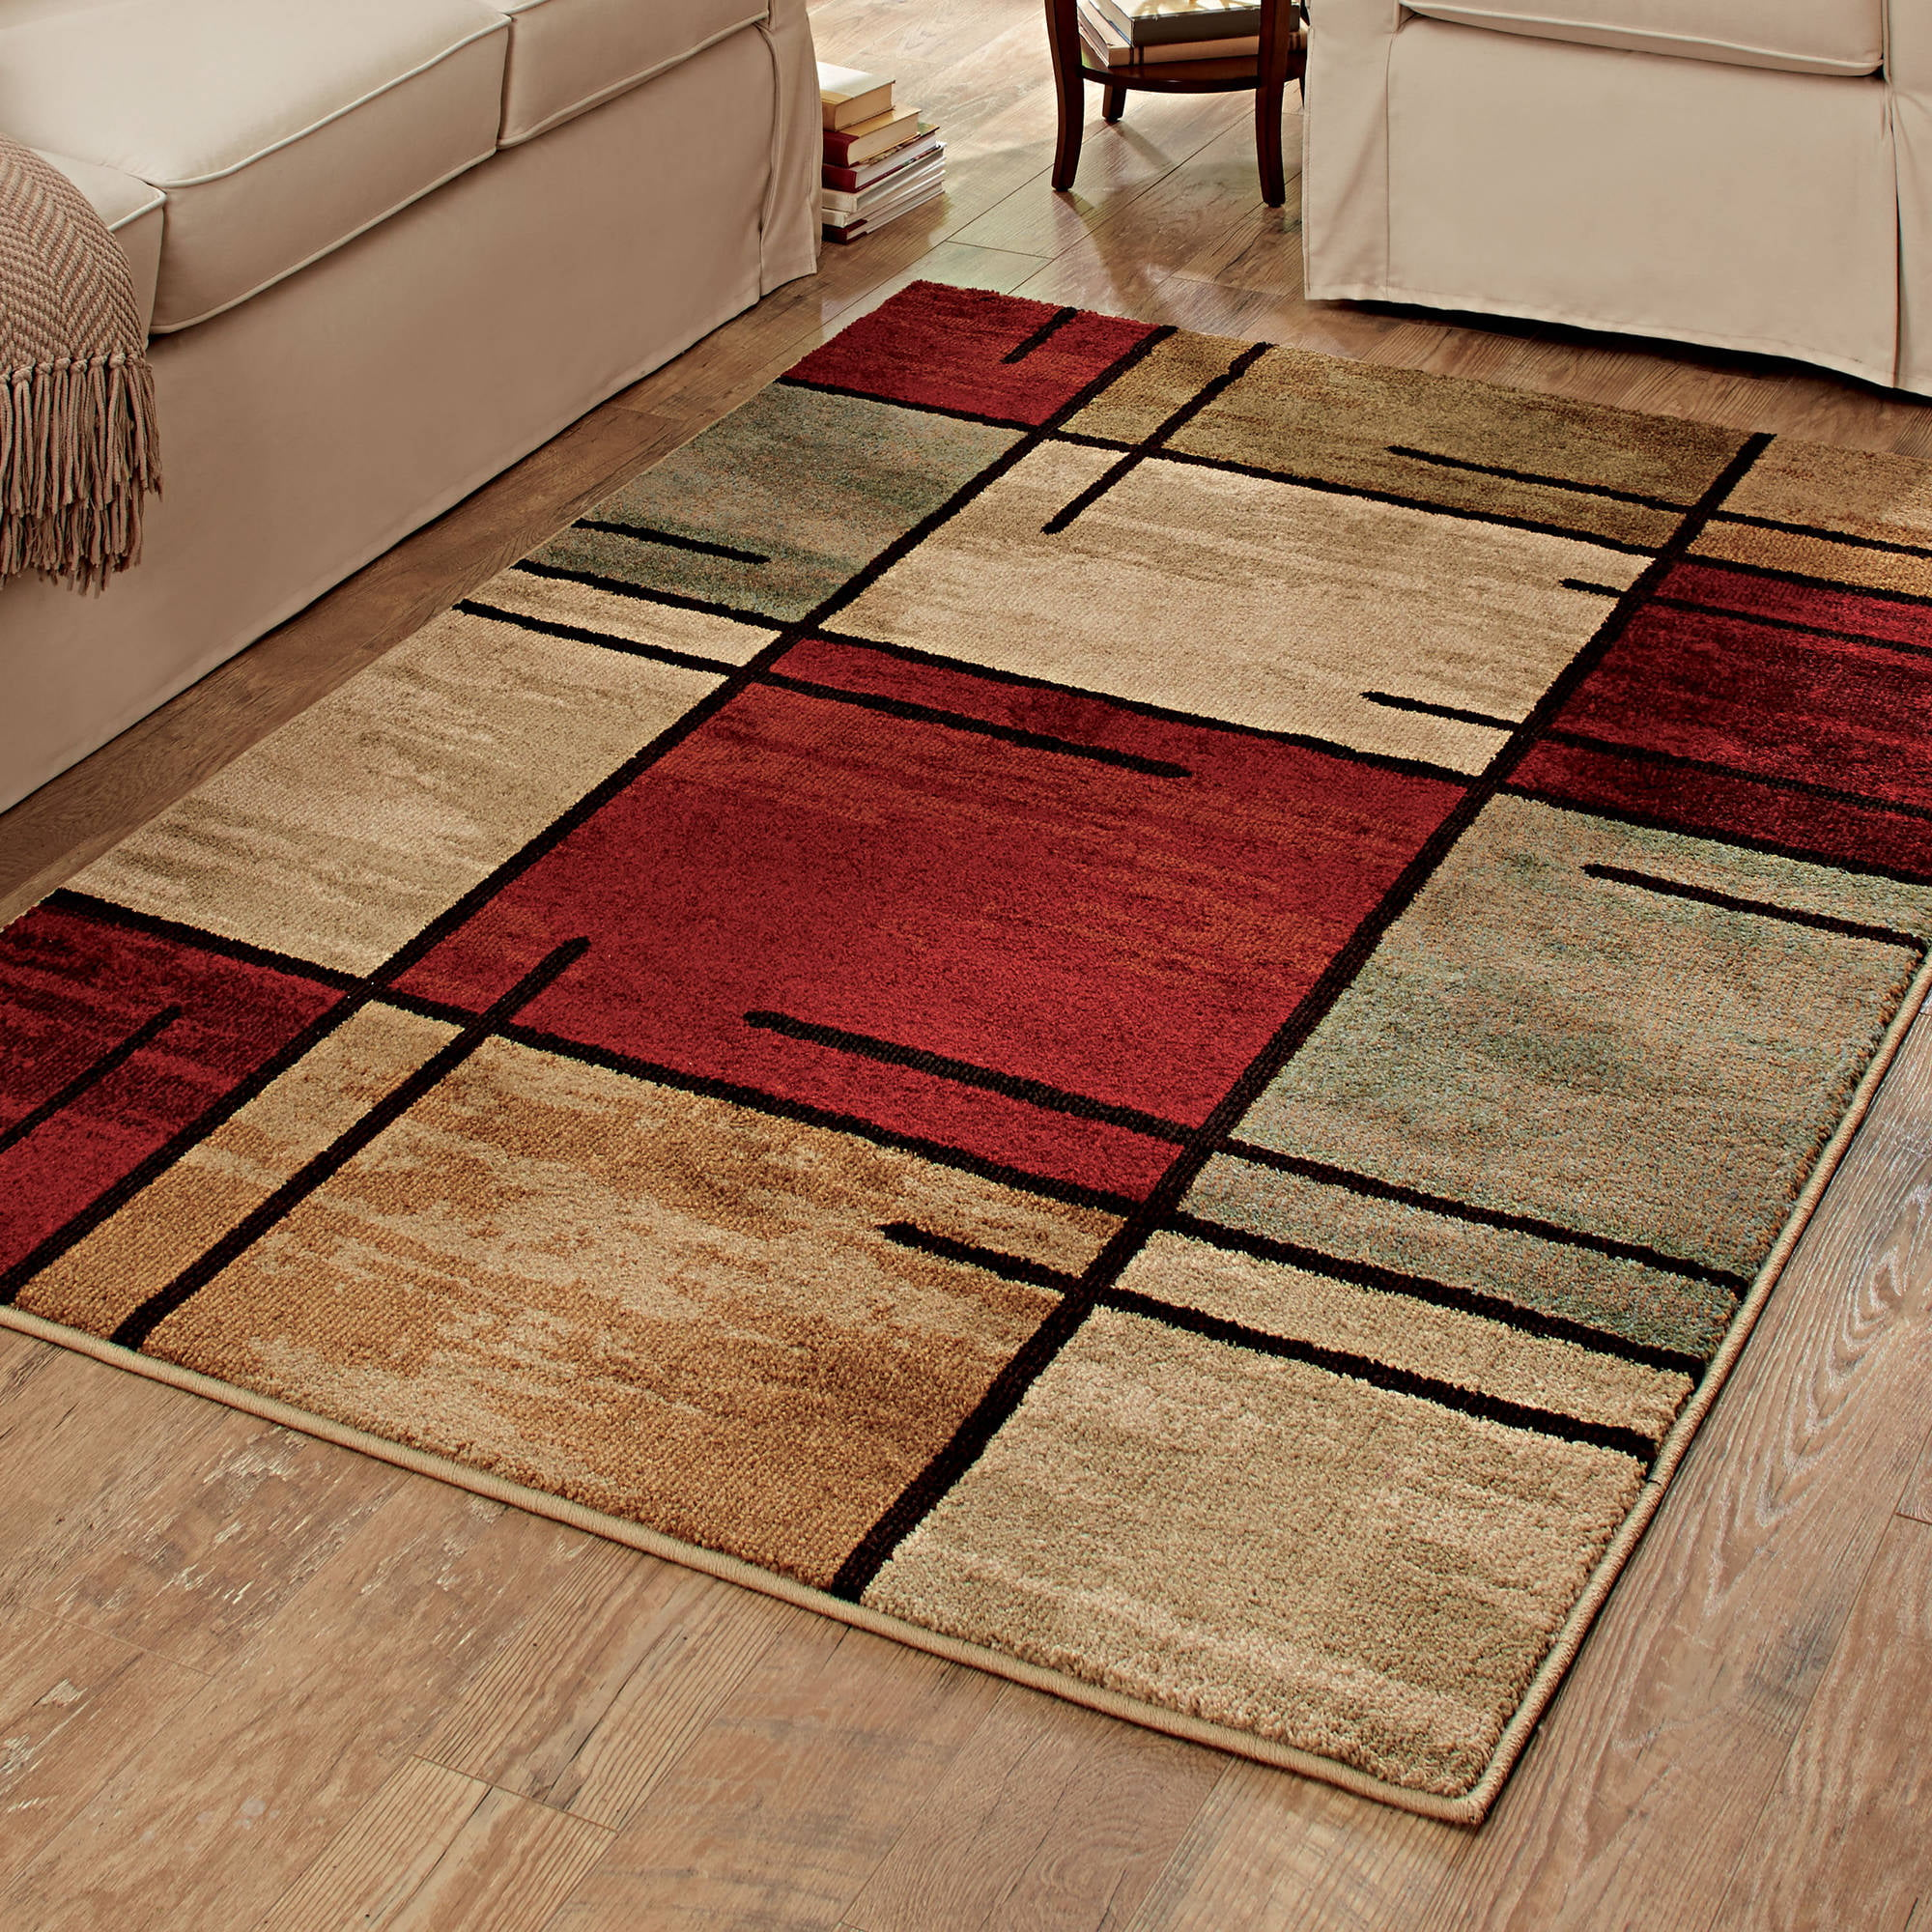 Better Homes & Gardens Spice Grid Area Rug - Walmart.com